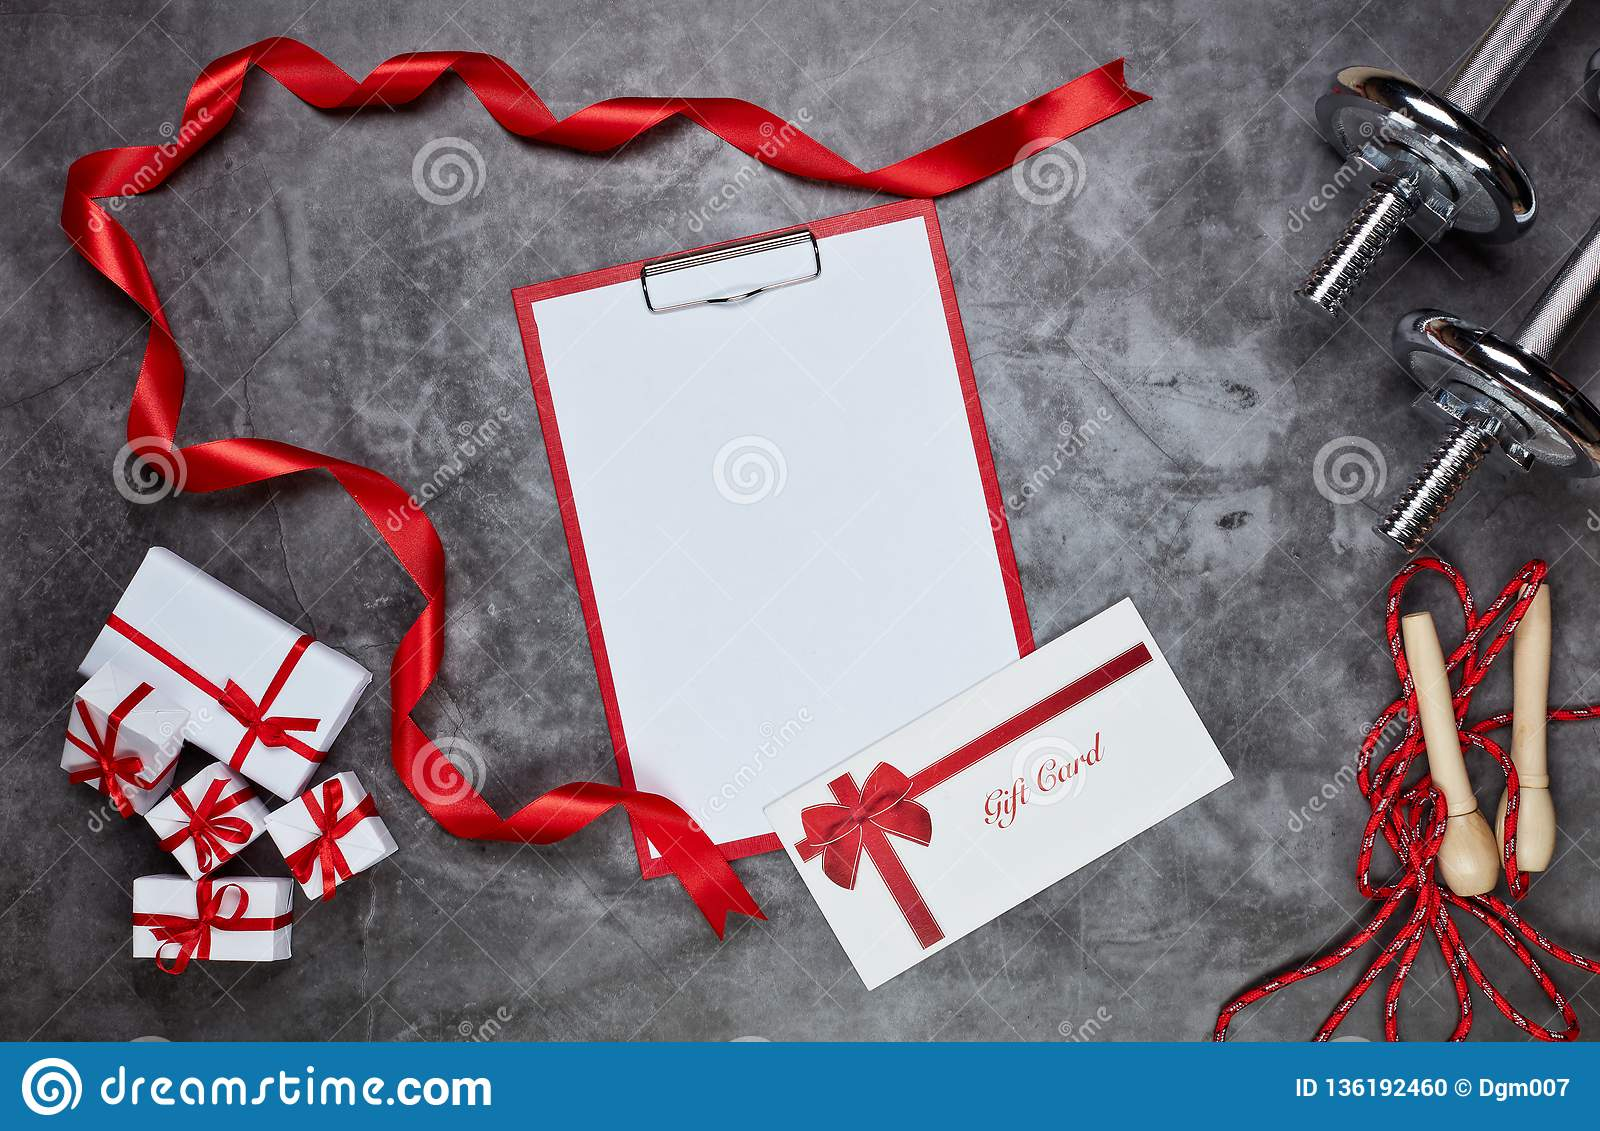 Sport Equipment And Gift Boxes Fitness Stock Photo Image Of